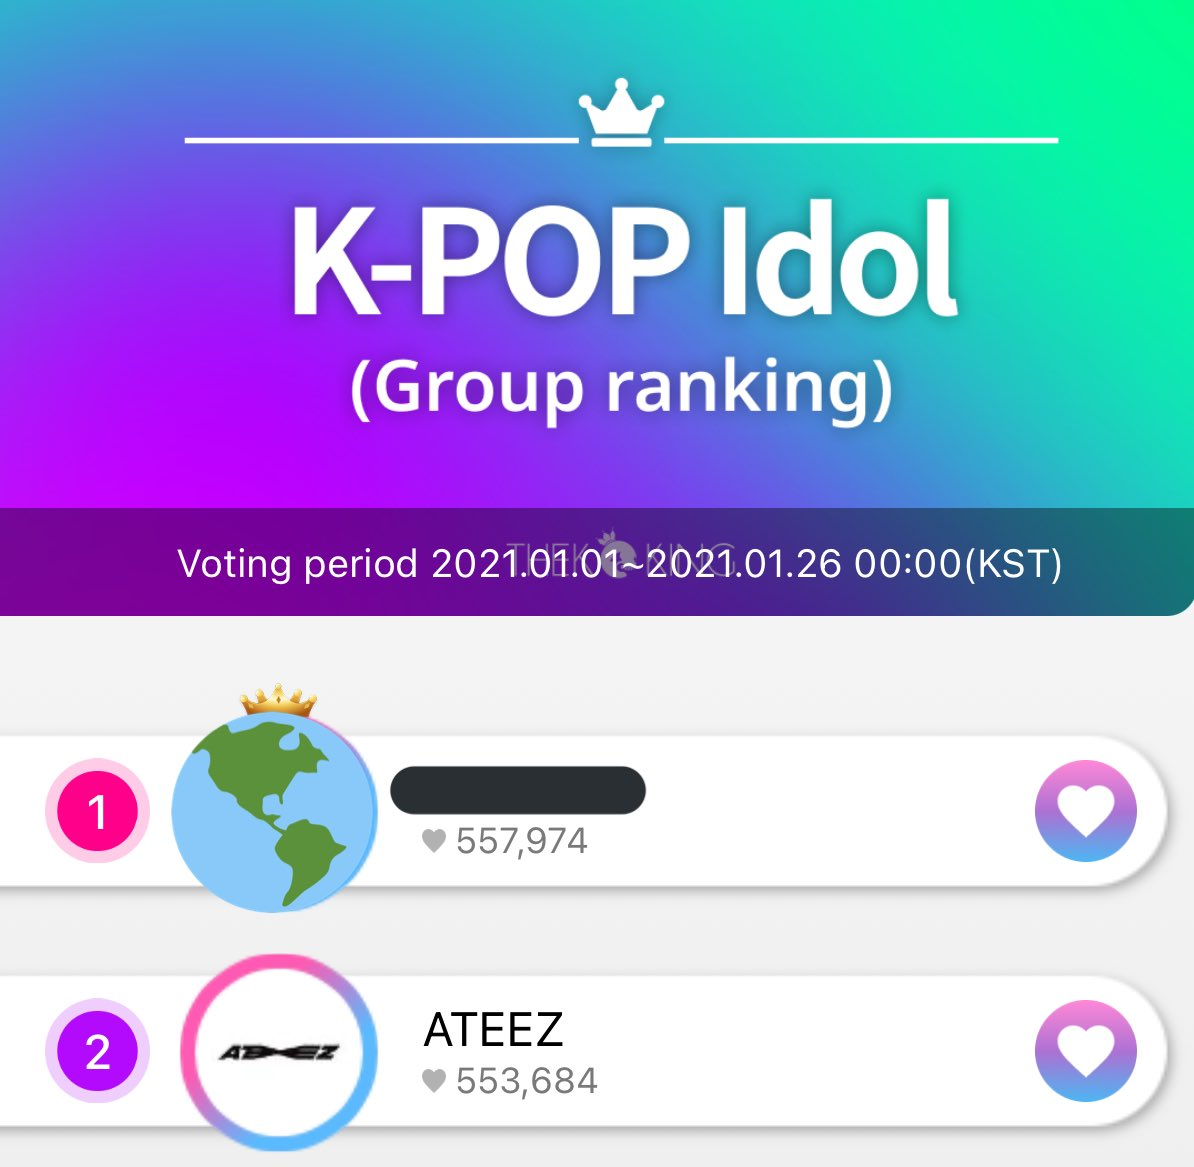 """[🏆] THEKKING  ❗️ATINY❗️  We've lost our place in """"Group Rank"""" in the THEKKING app! If you haven't voted yet, please do! Keep collecting and make new accounts if you can!   #ATEEZ #에이티즈 @ATEEZOfficial"""